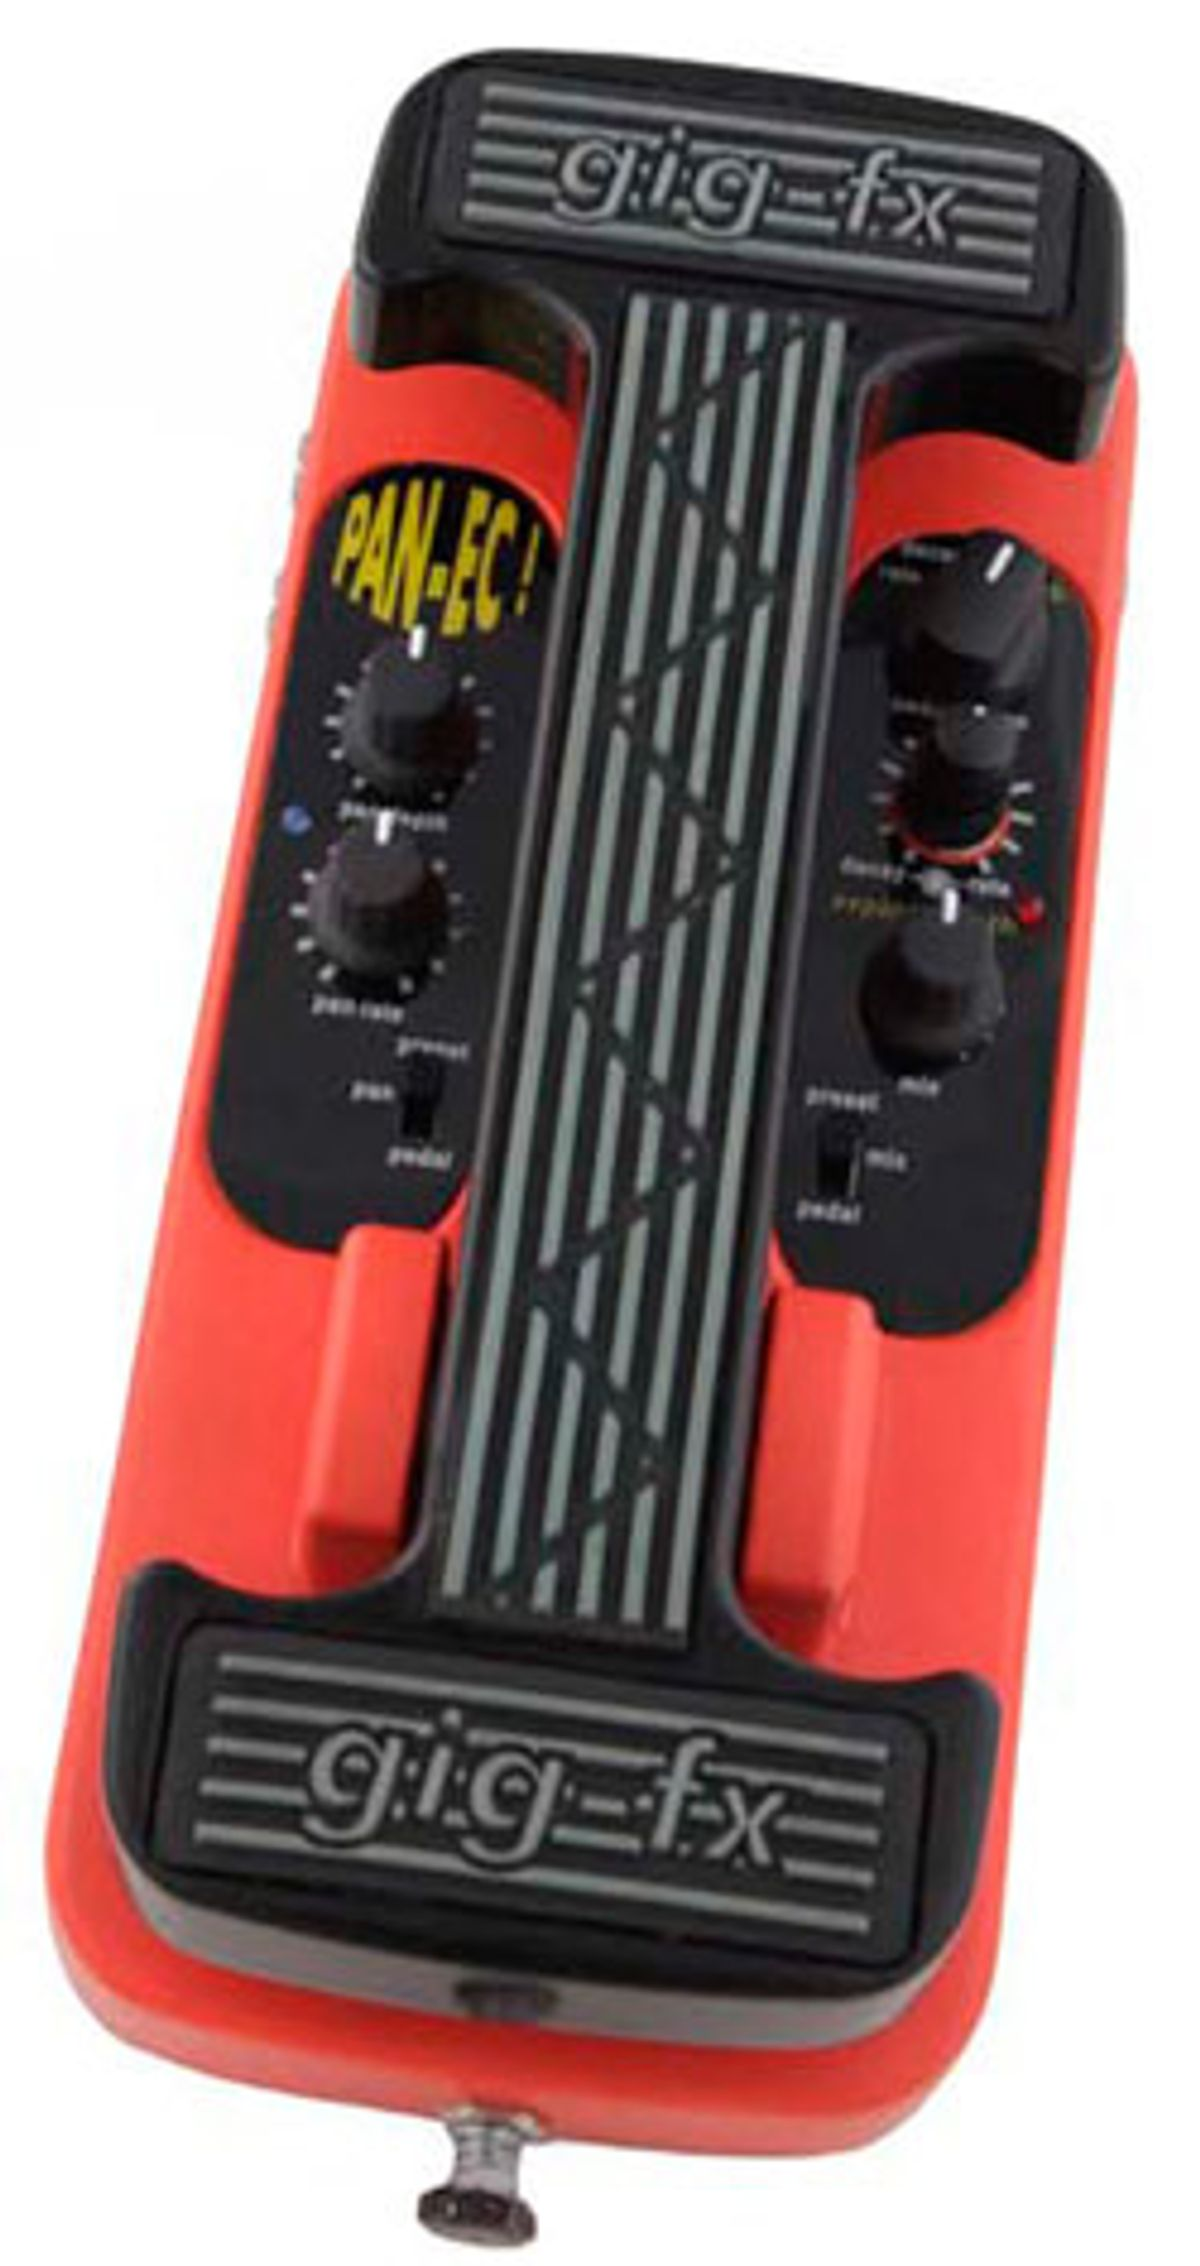 Gig-FX Launches the Pan-Ec Echo-Reverb Pedal